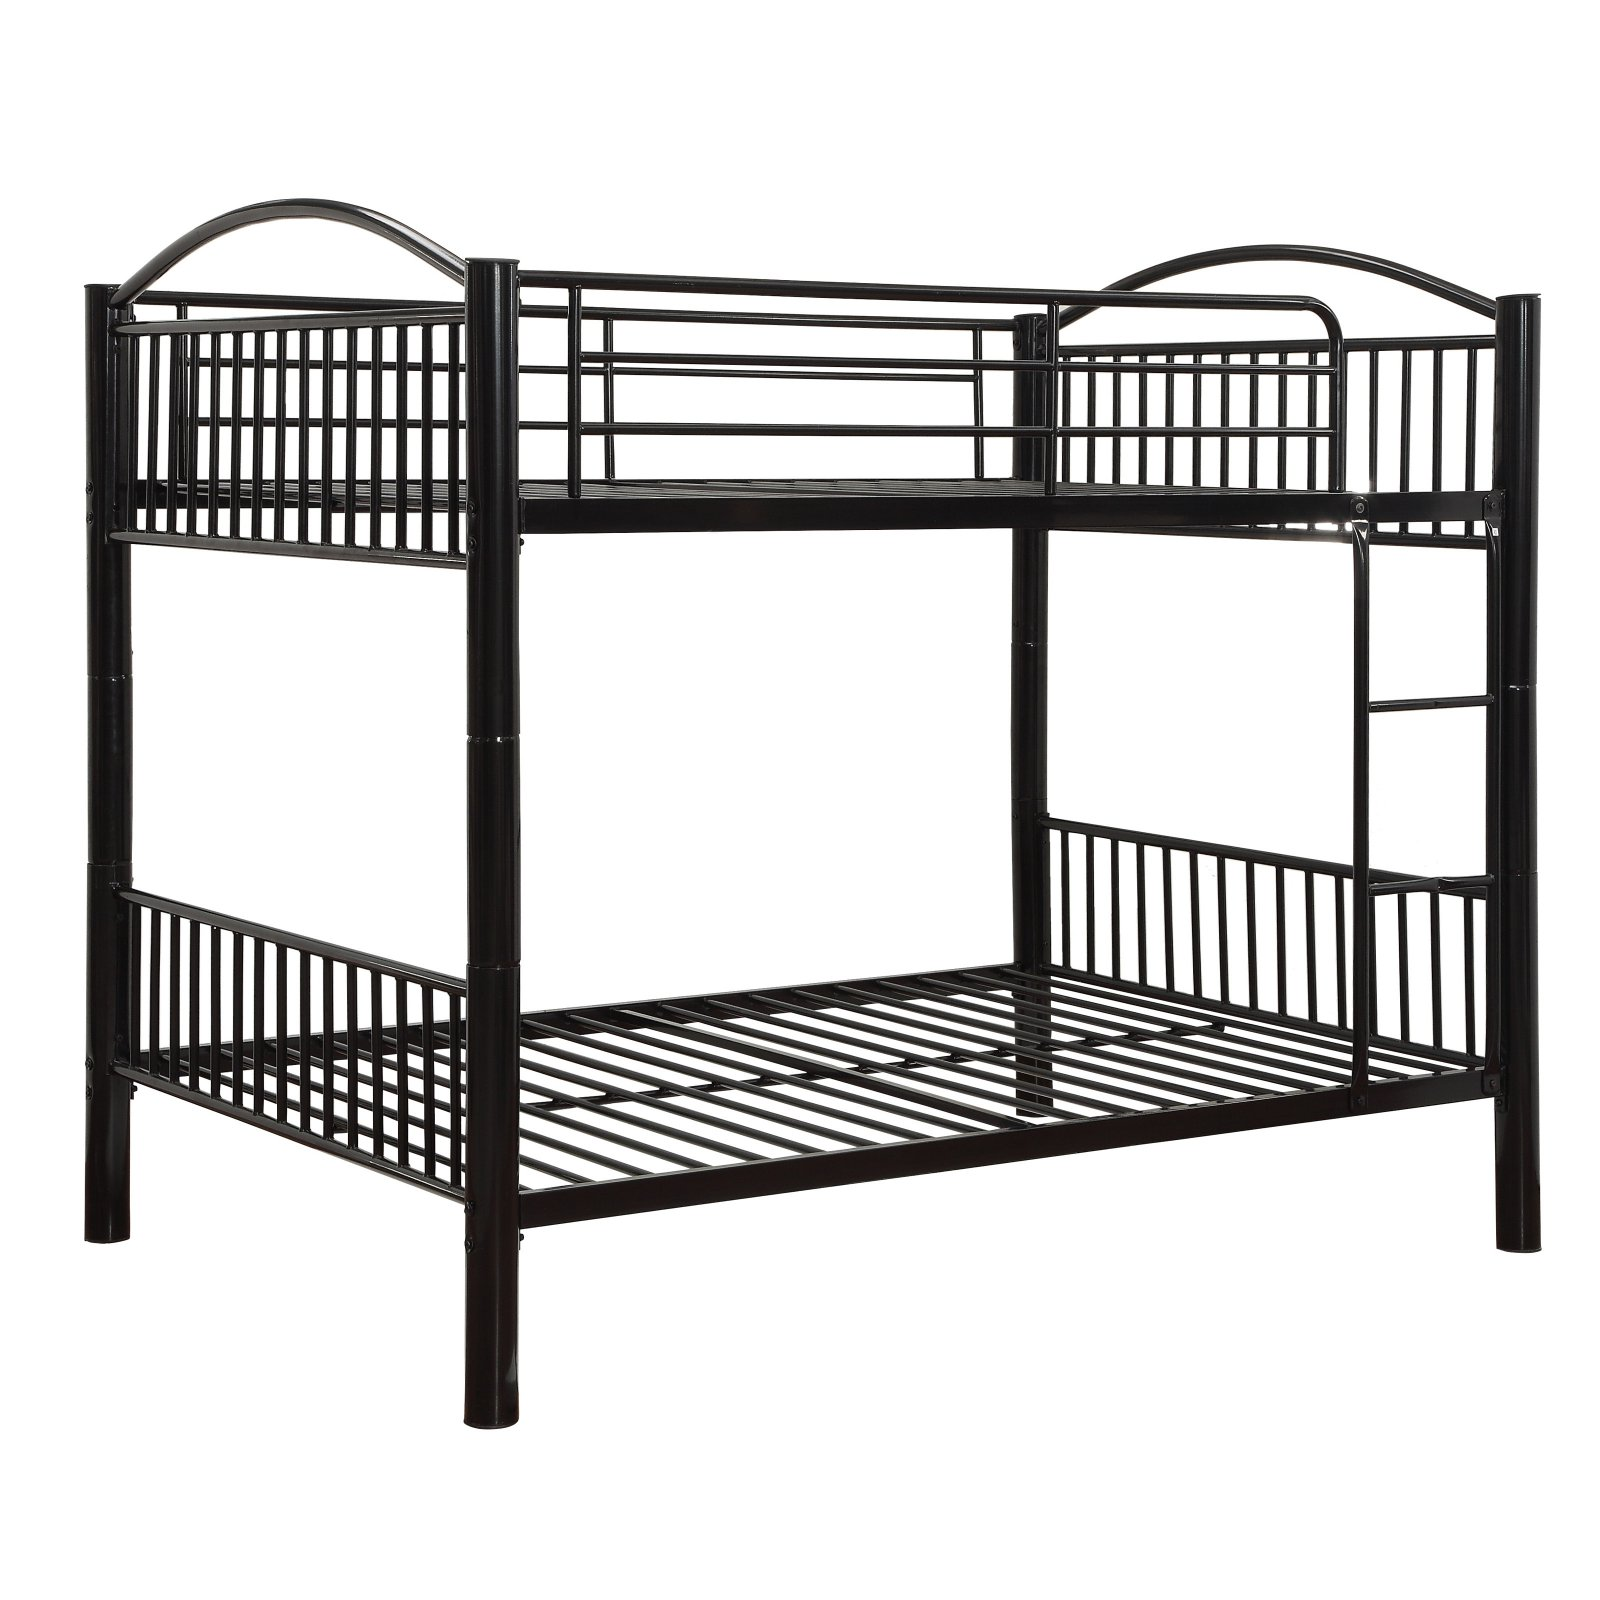 ACME Cayelynn Full over Full Bunk Bed, Black